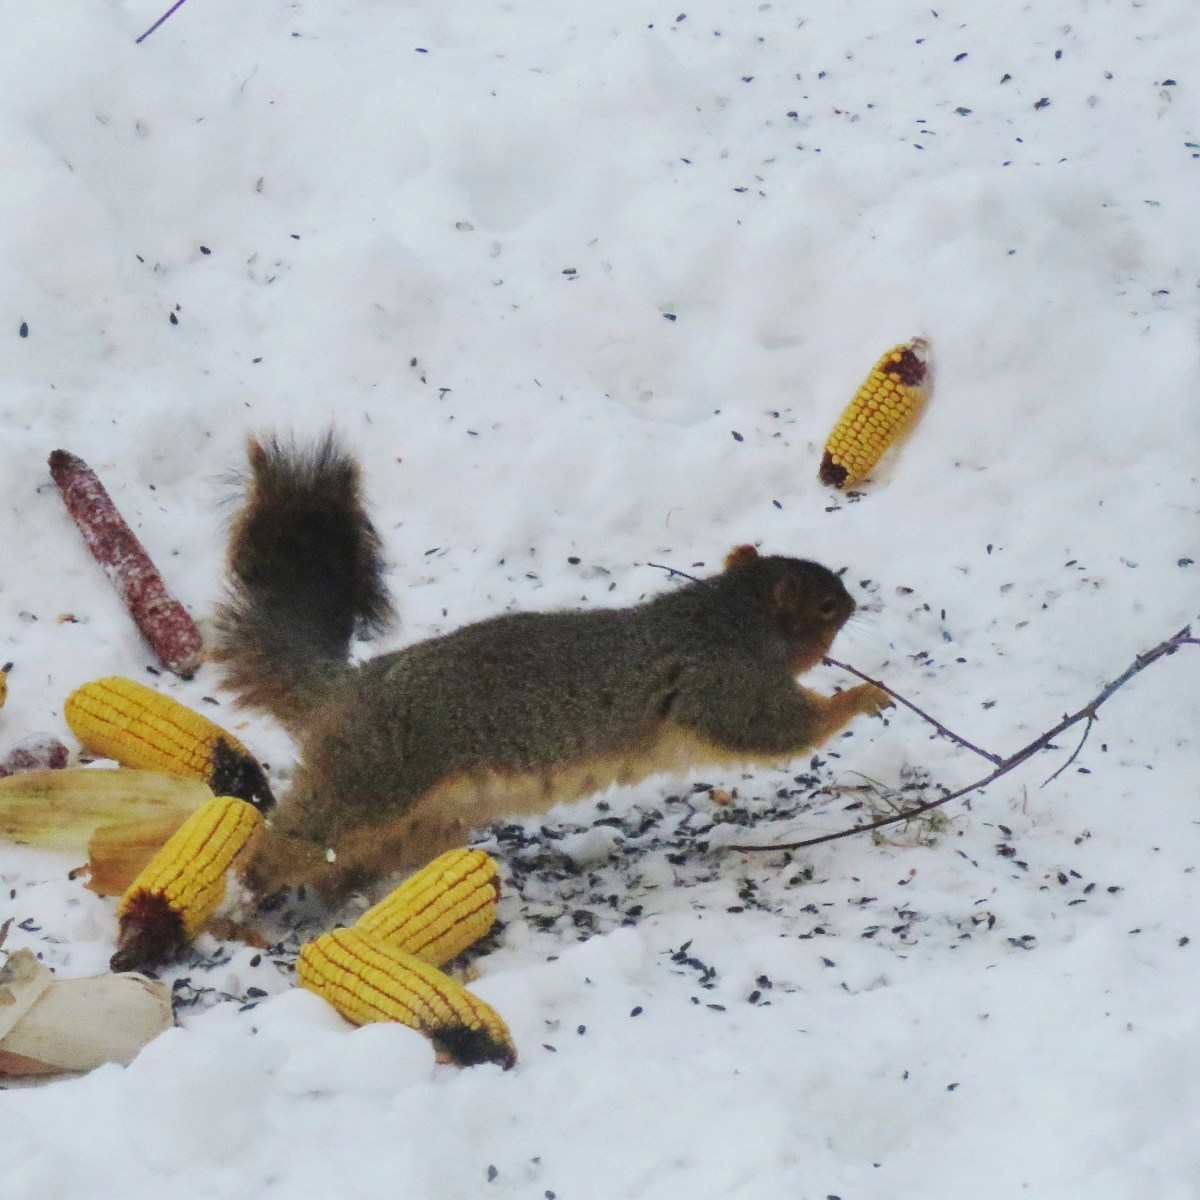 Two squirrels squabble near bird seed and ears of corn in the snow